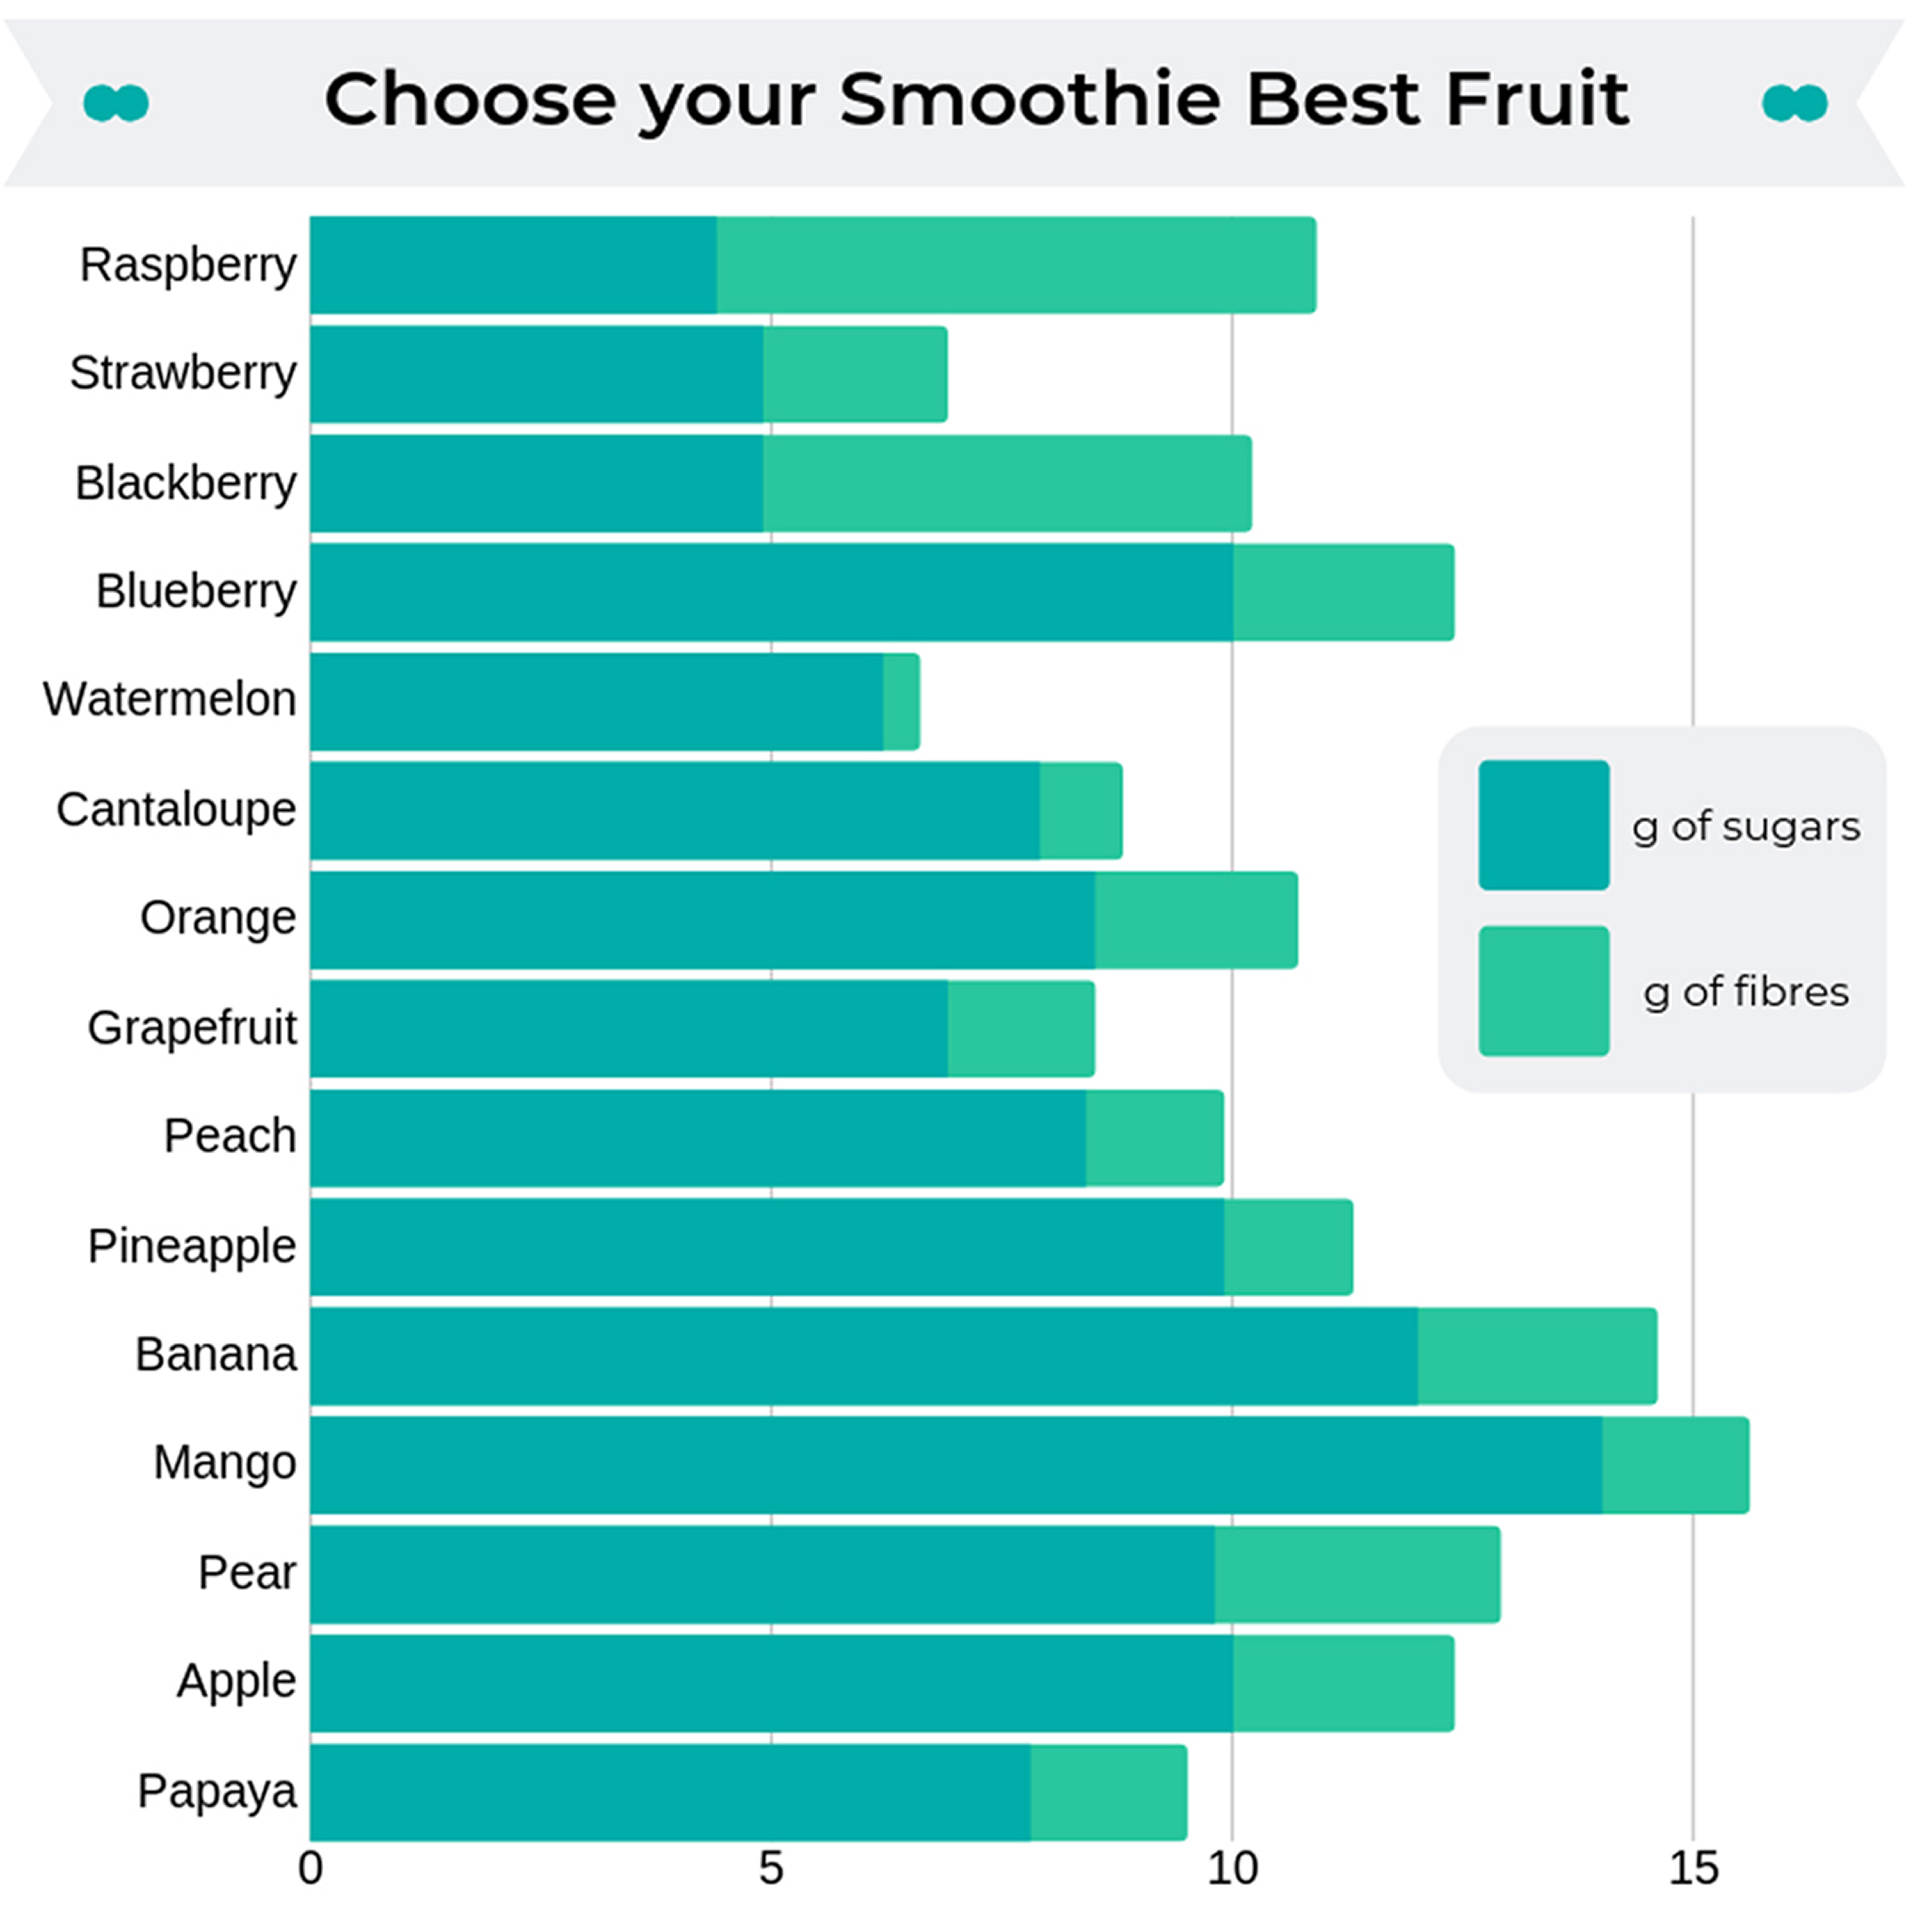 which is the best fruit for smoothies